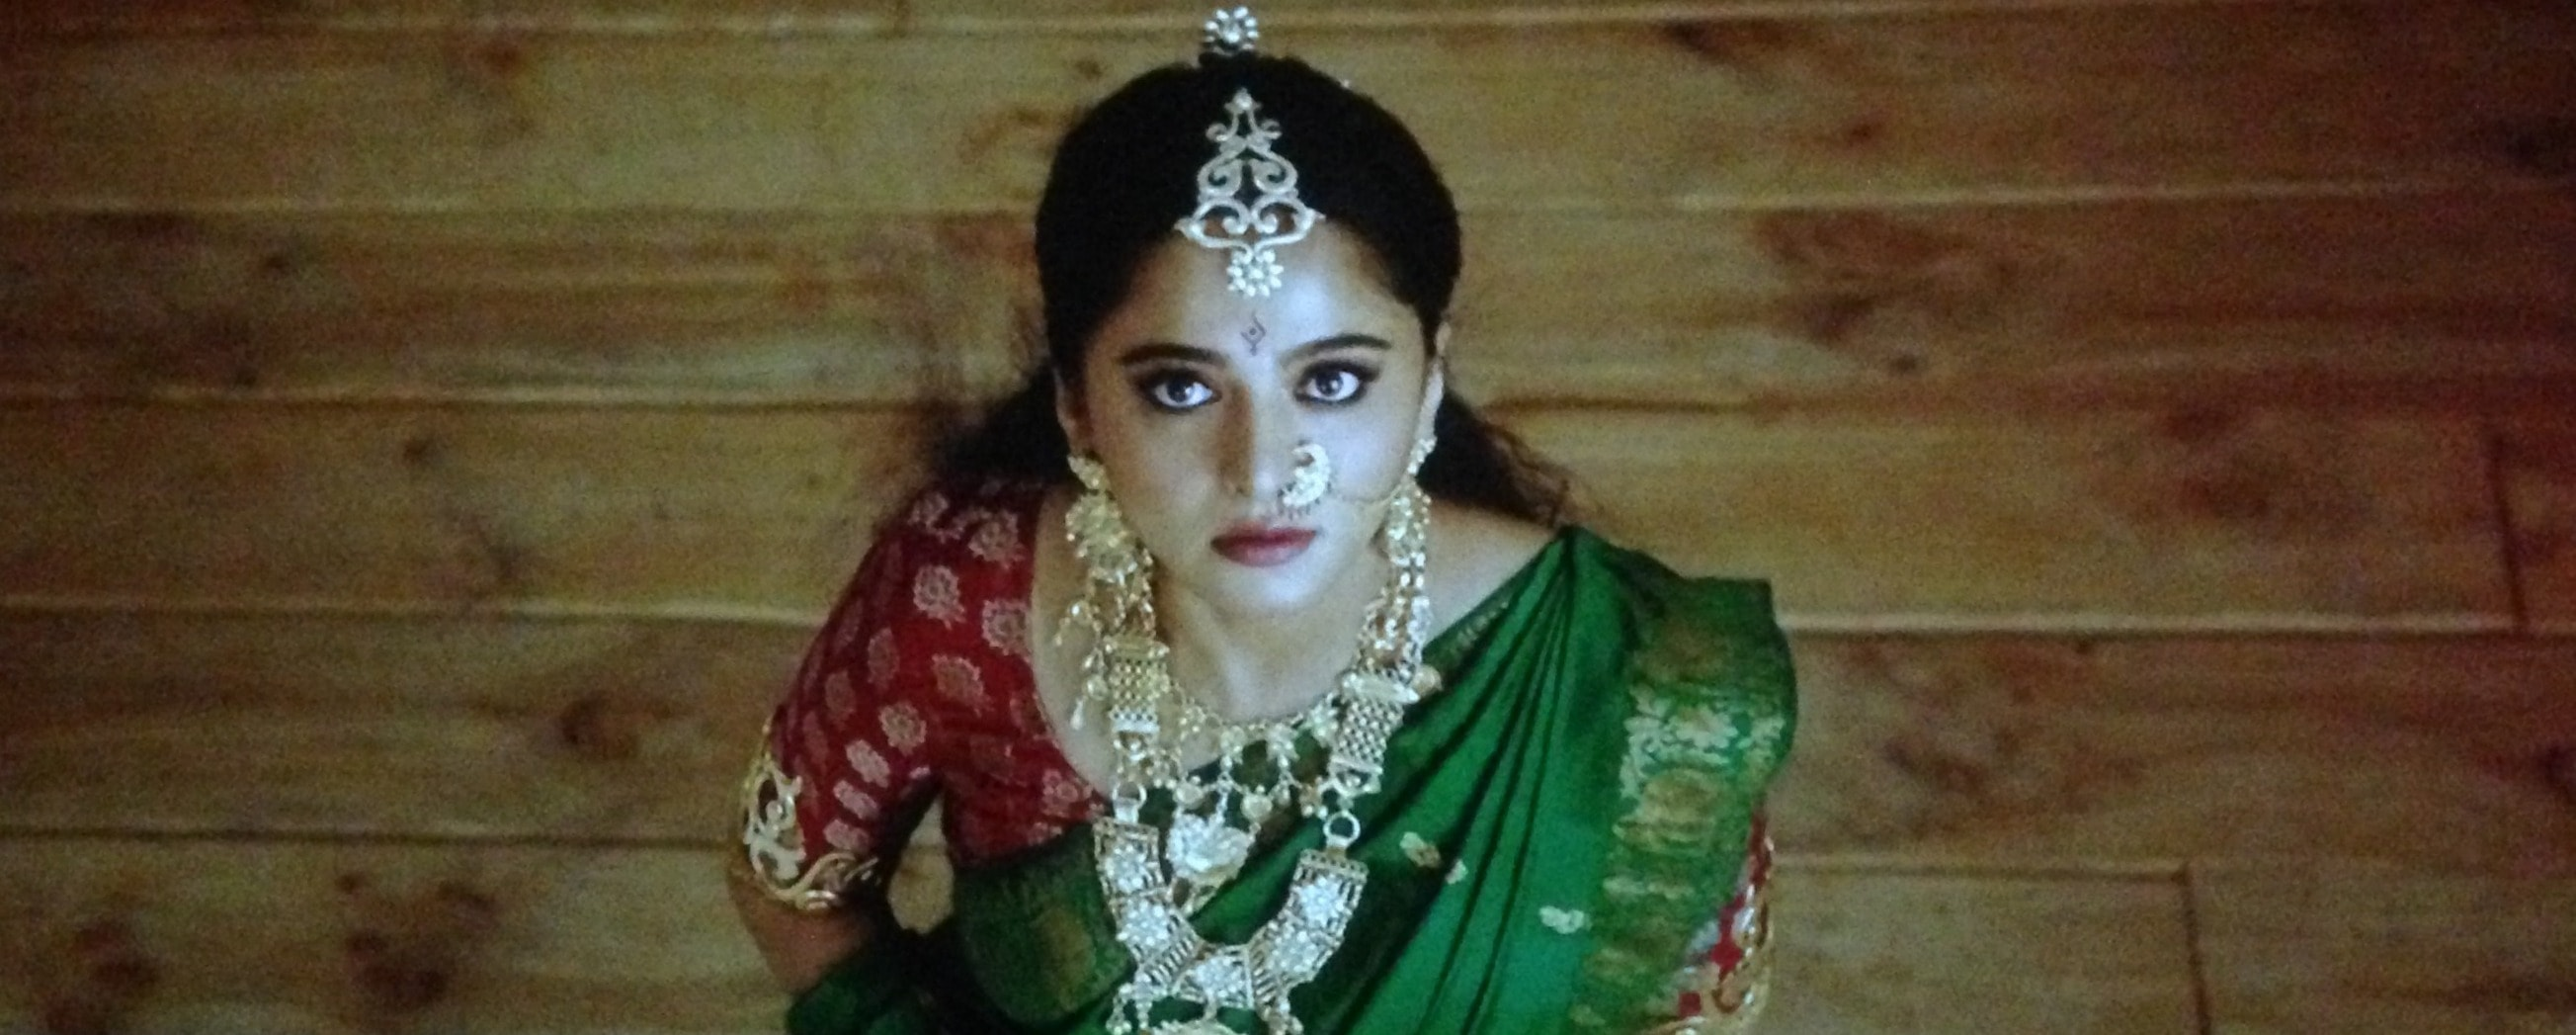 Anushka Shetty in green saree in bahubali 2 The conclusion